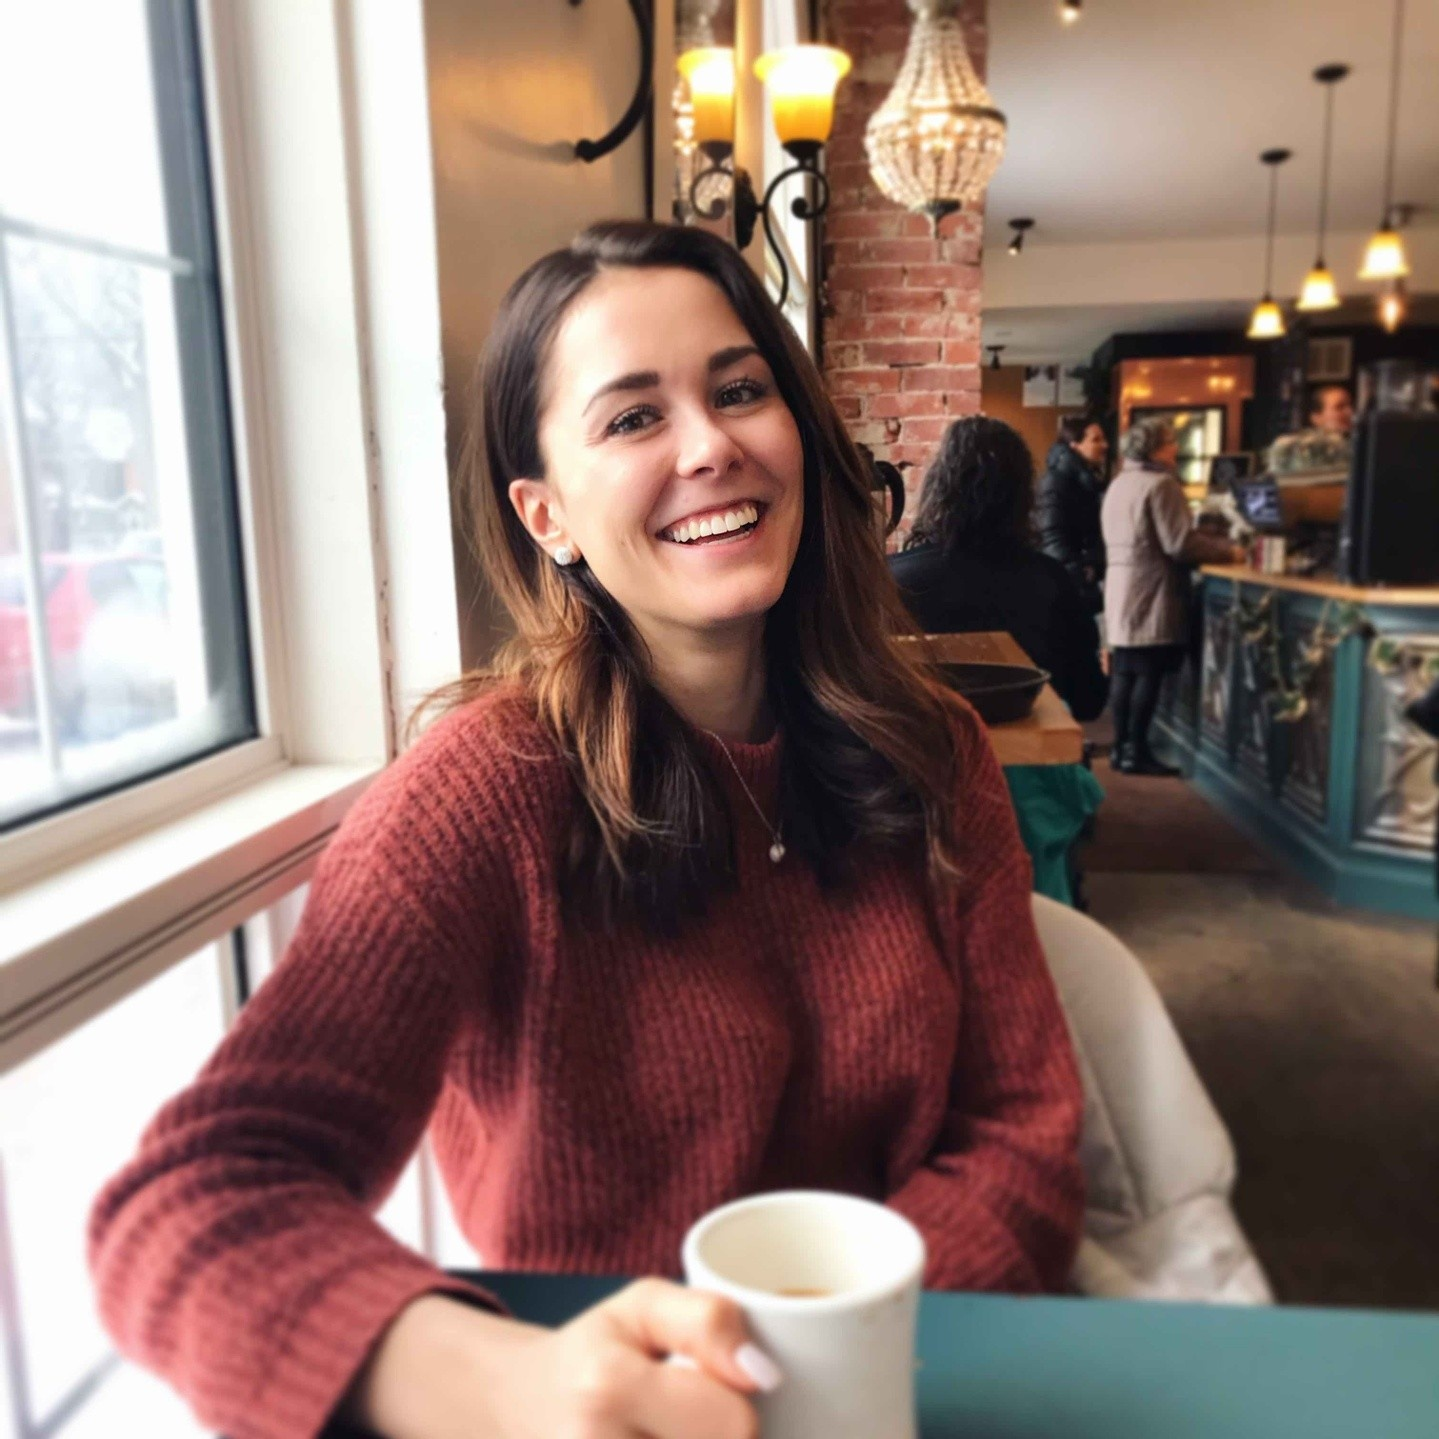 Hannah Murray is a Registered Dietitian and Nutritionist with Vitality Nutrition in Saskatoon. Her practice focuses on nutrition for fertility, sports nutrition, and recovery from disordered eating.